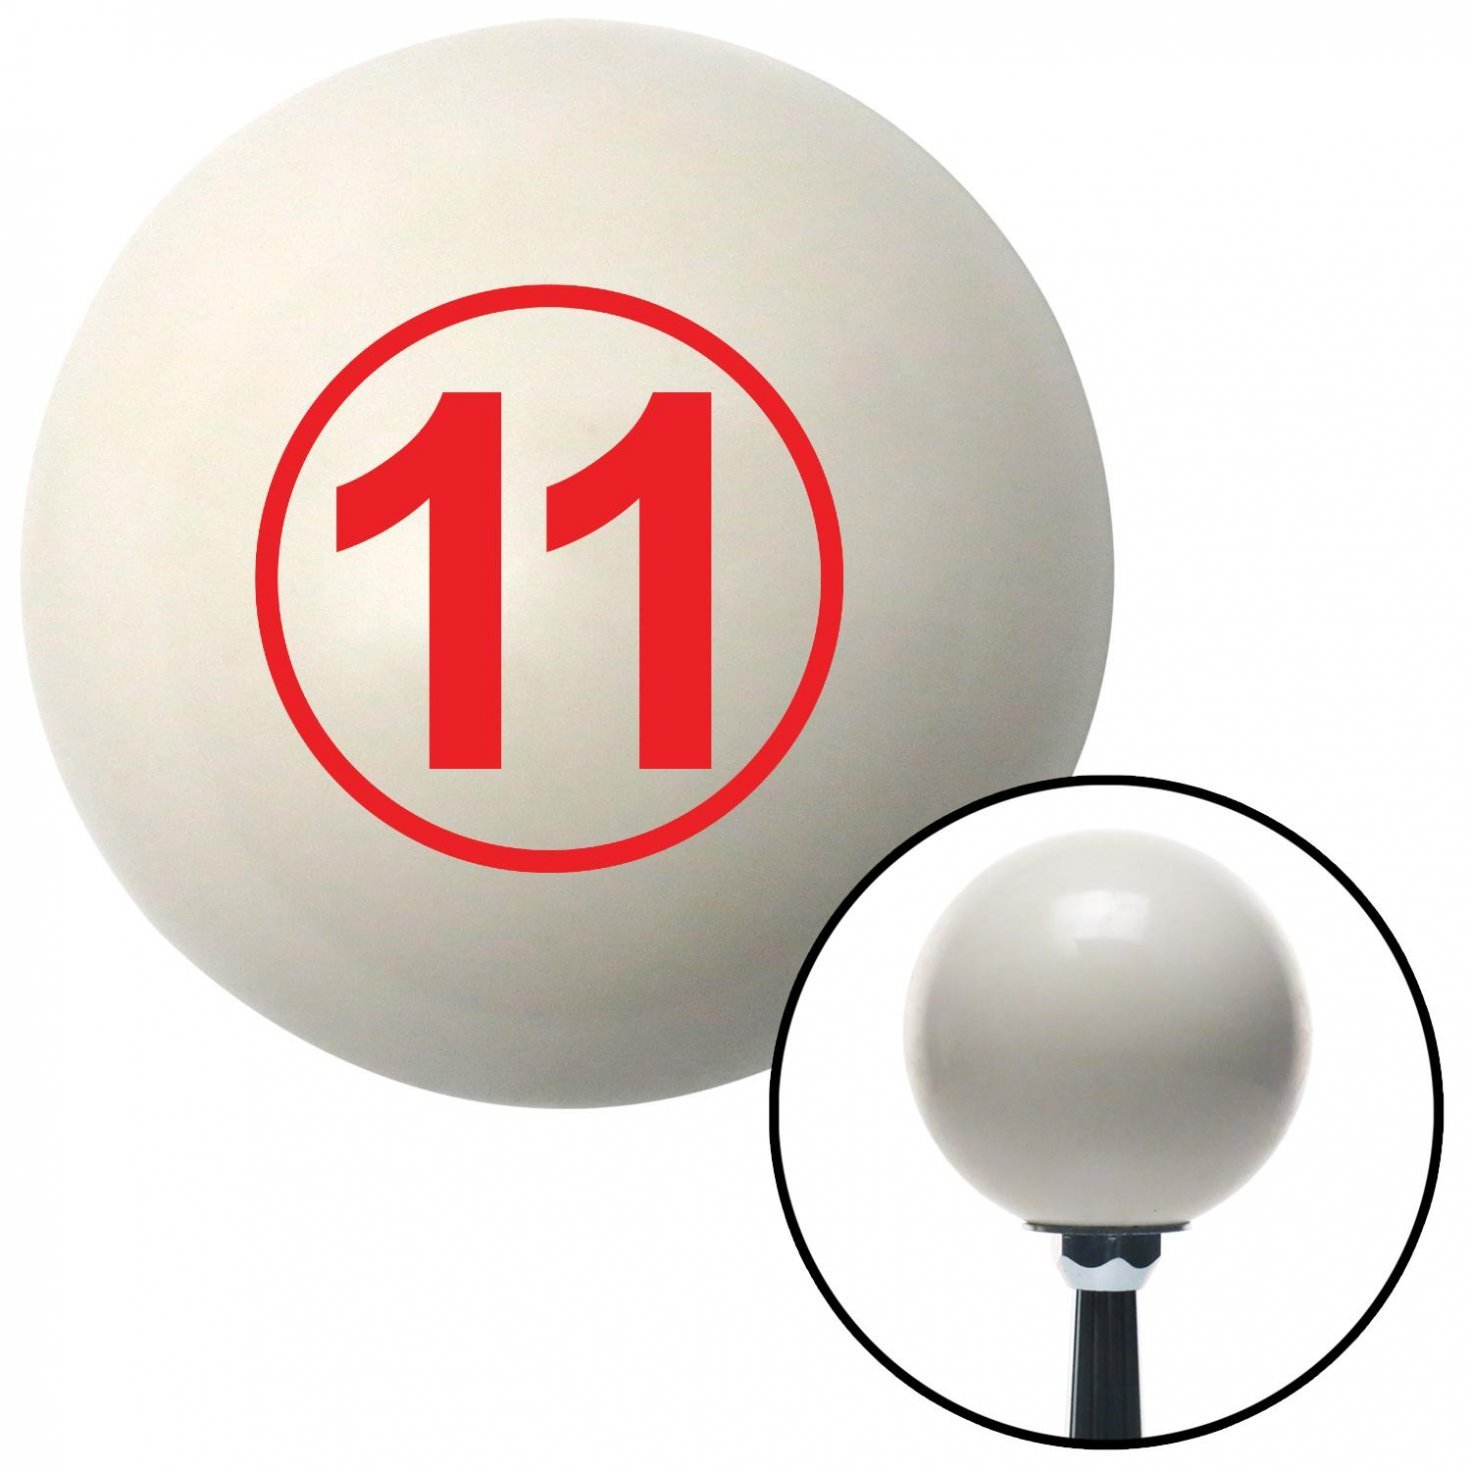 Red Ball 11 American Shifter 30356 Ivory Shift Knob with 16mm x 1.5 Insert